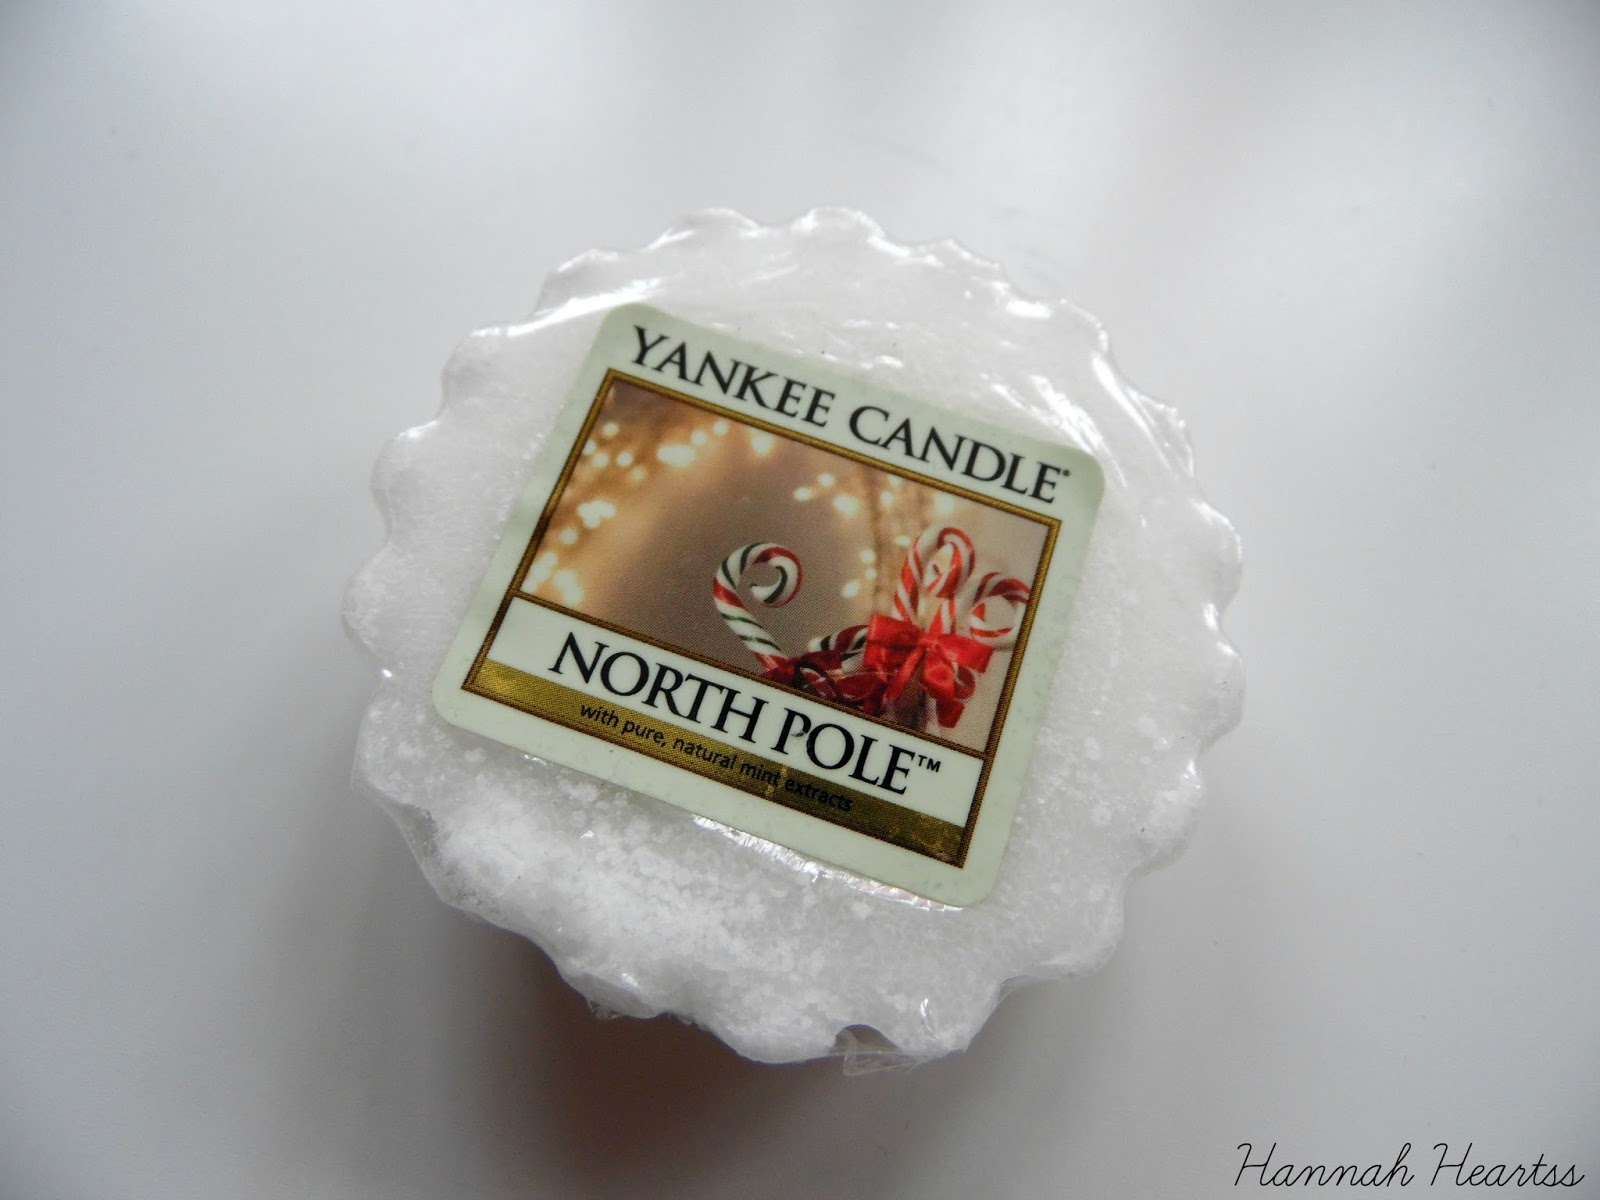 Yankee Candle North Pole Tart